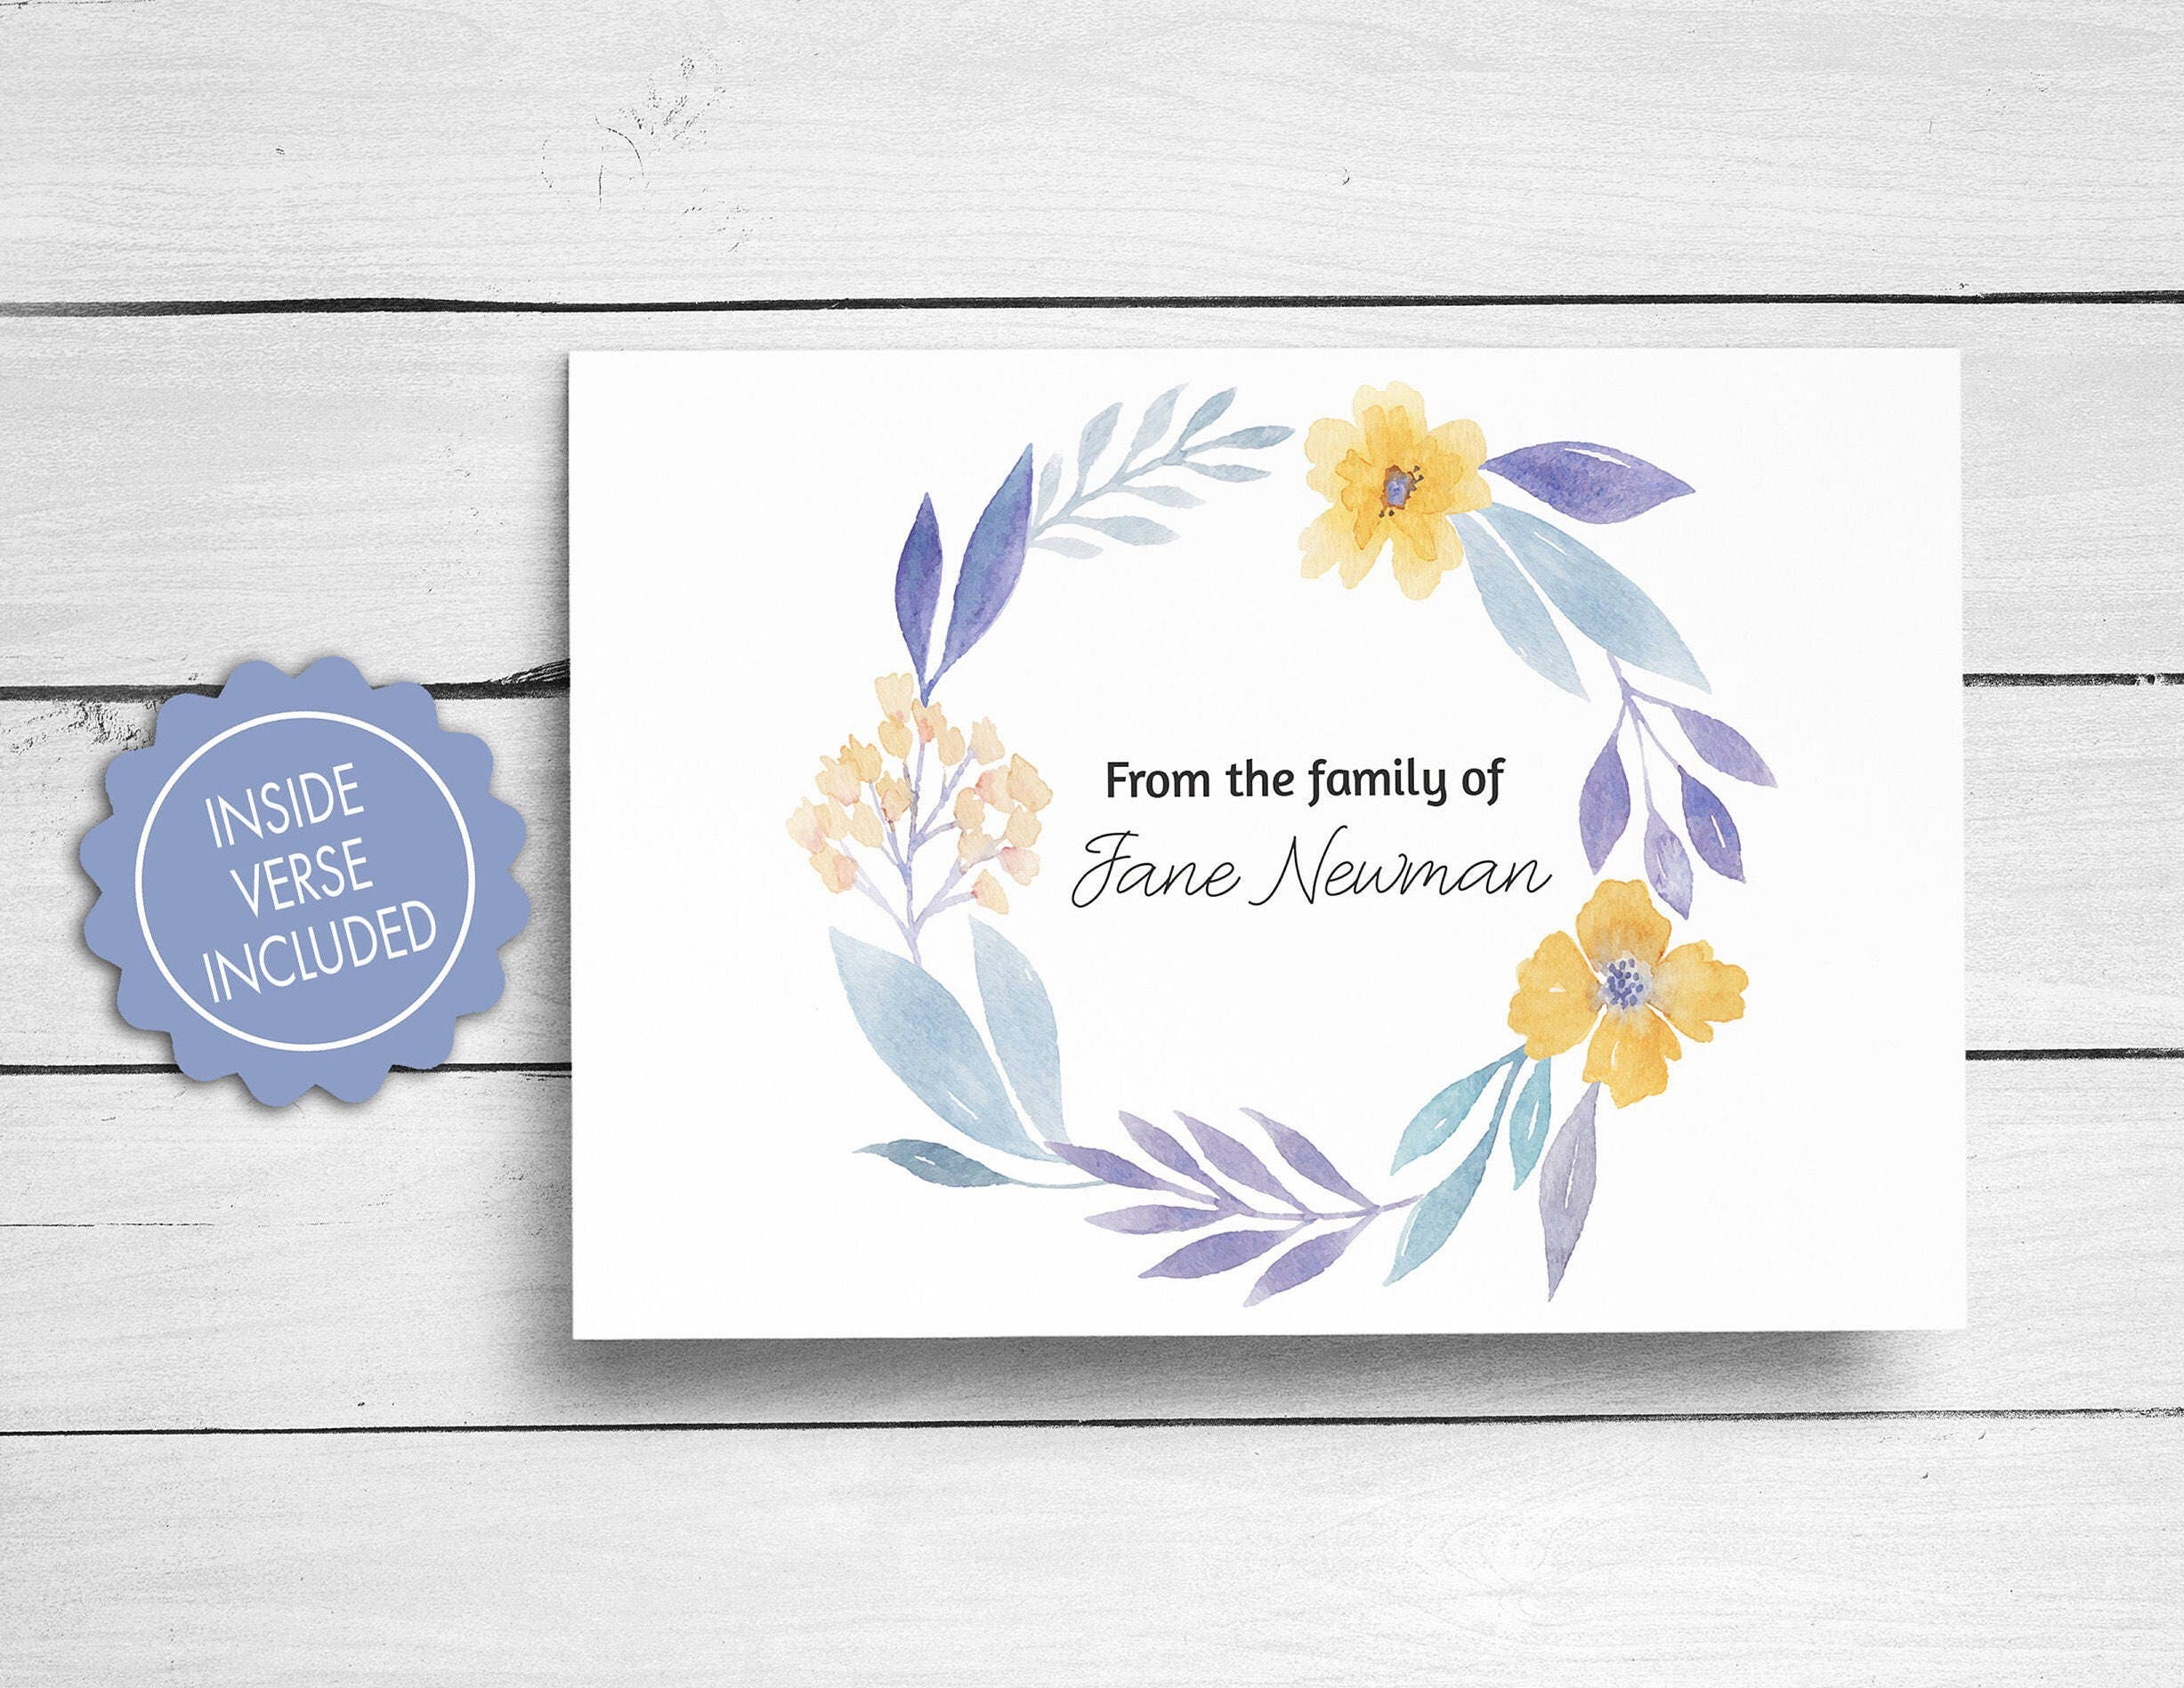 Sympathy acknowledgement cards funeral thank you cards bereavement sympathy acknowledgement cards funeral thank you cards bereavement cards floral funeral cards personalized funeral note cards izmirmasajfo Gallery